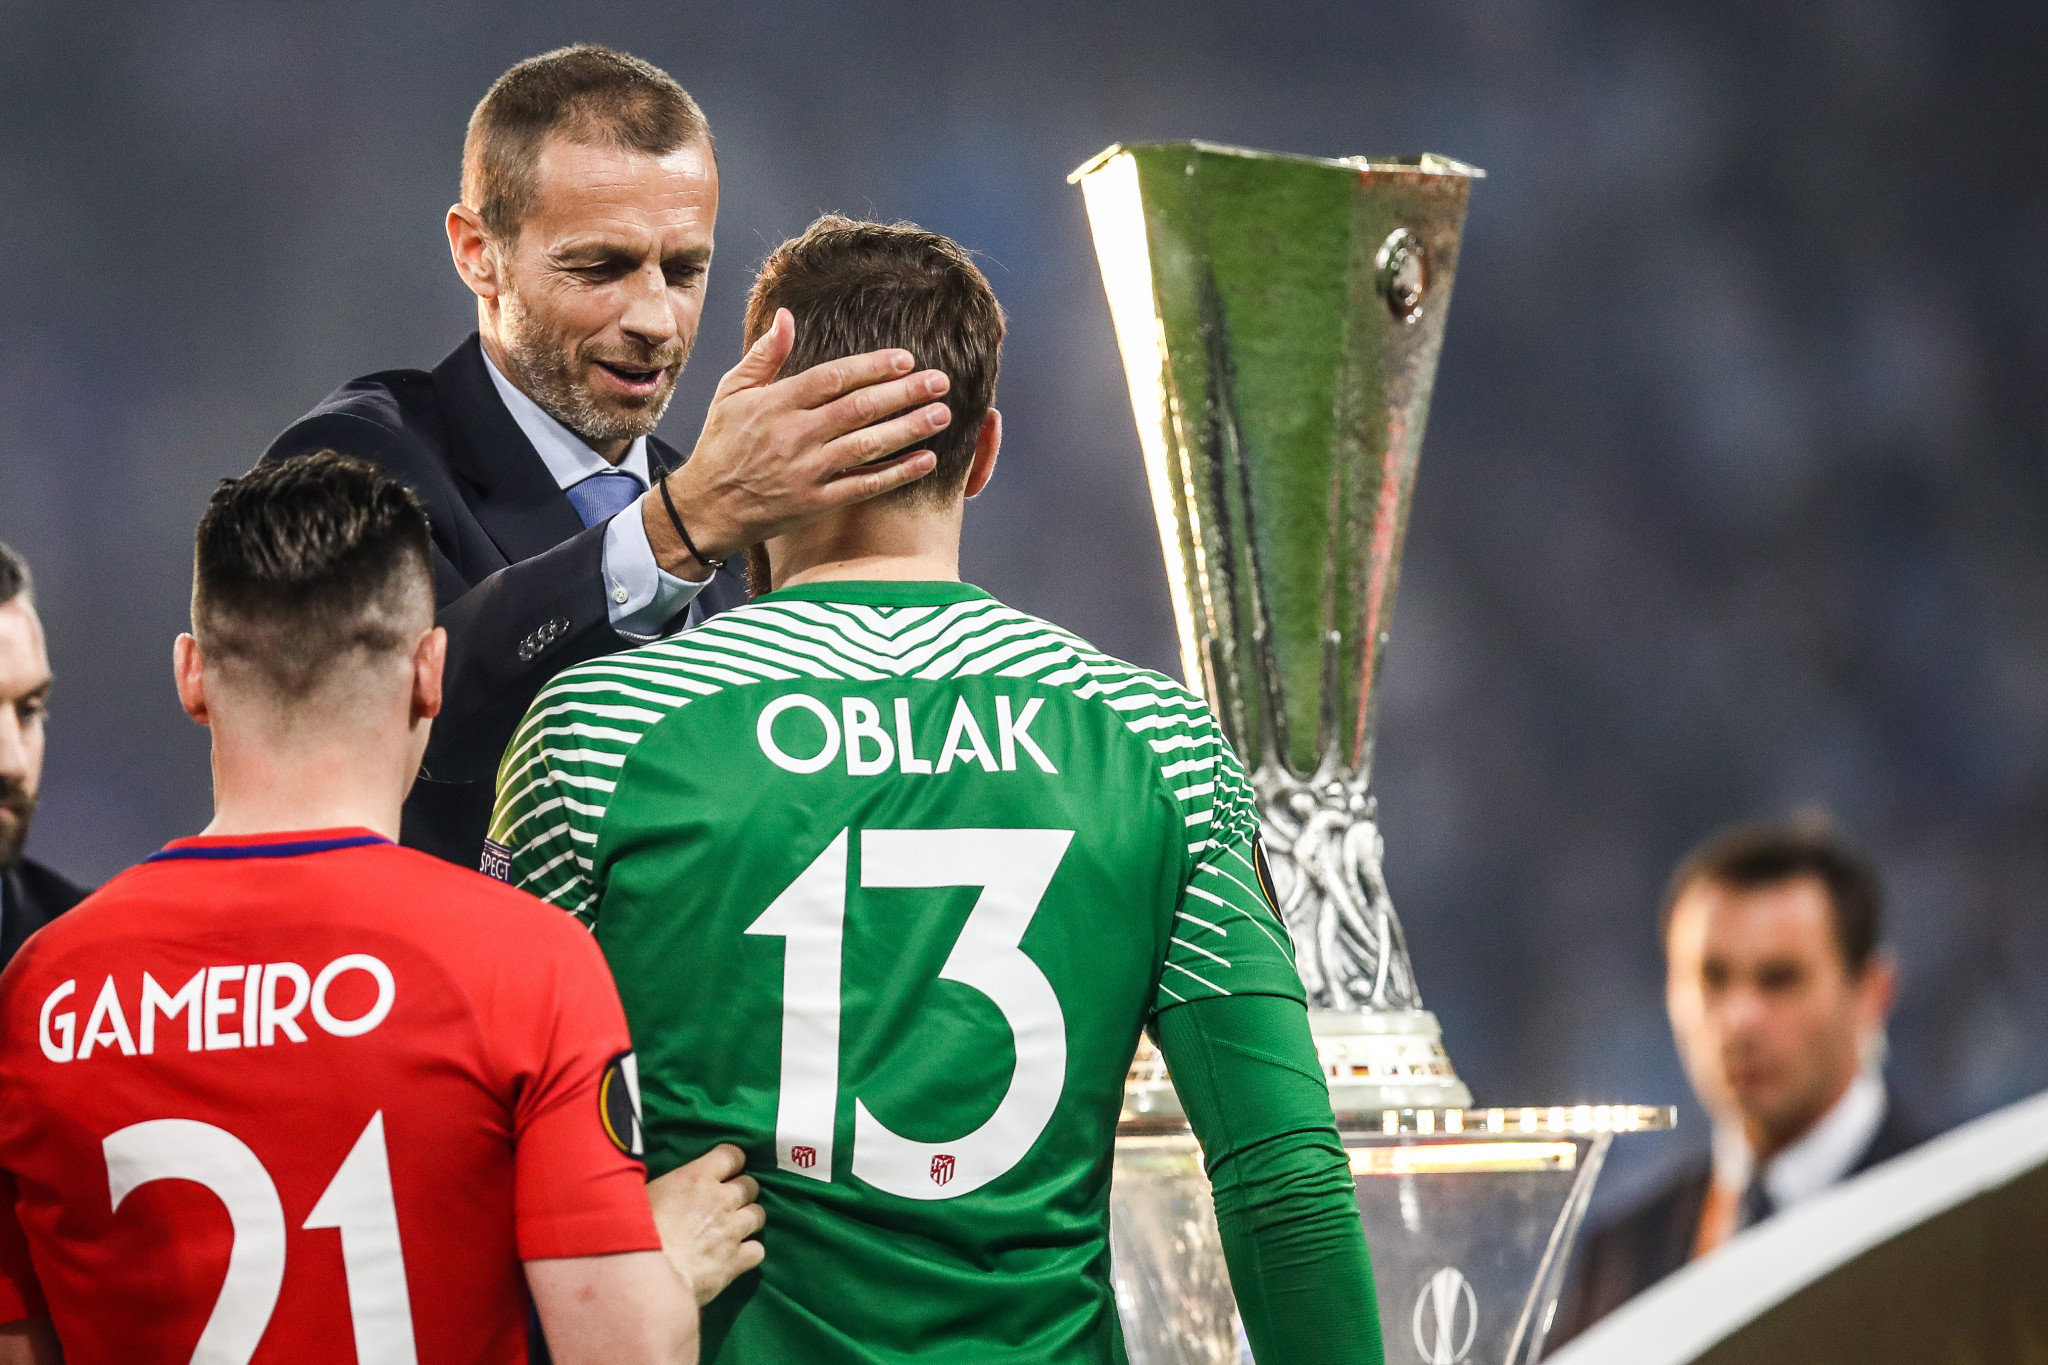 UEFA President Aleksander Ceferin has been among the officials to complain about the Club World Cup proposals ©Getty Images